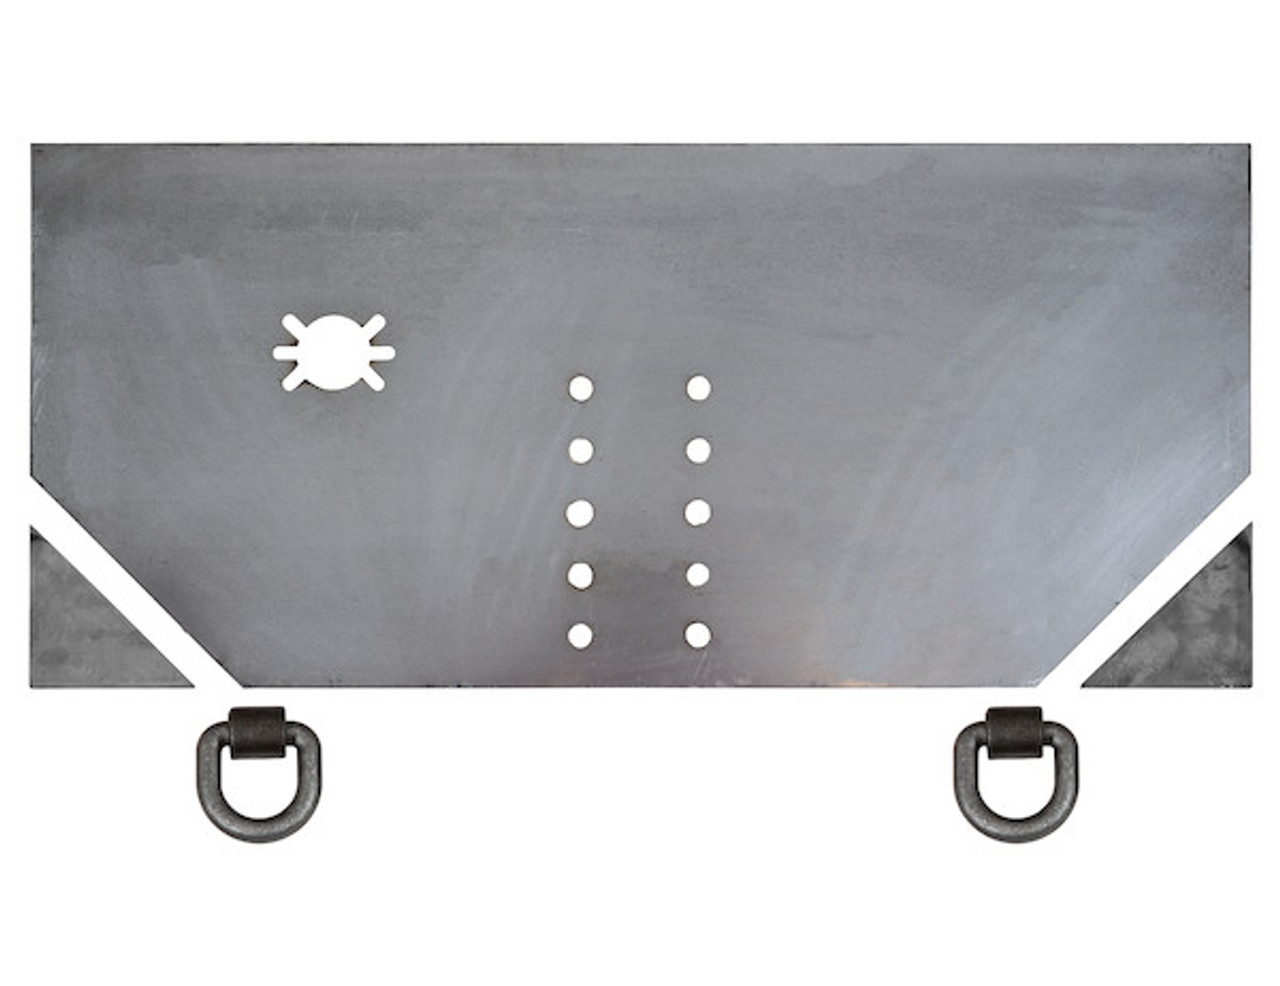 "1809042 --- 5/8"" Fabricators Hitch Plate with Pintle Hook Mounting Holes"